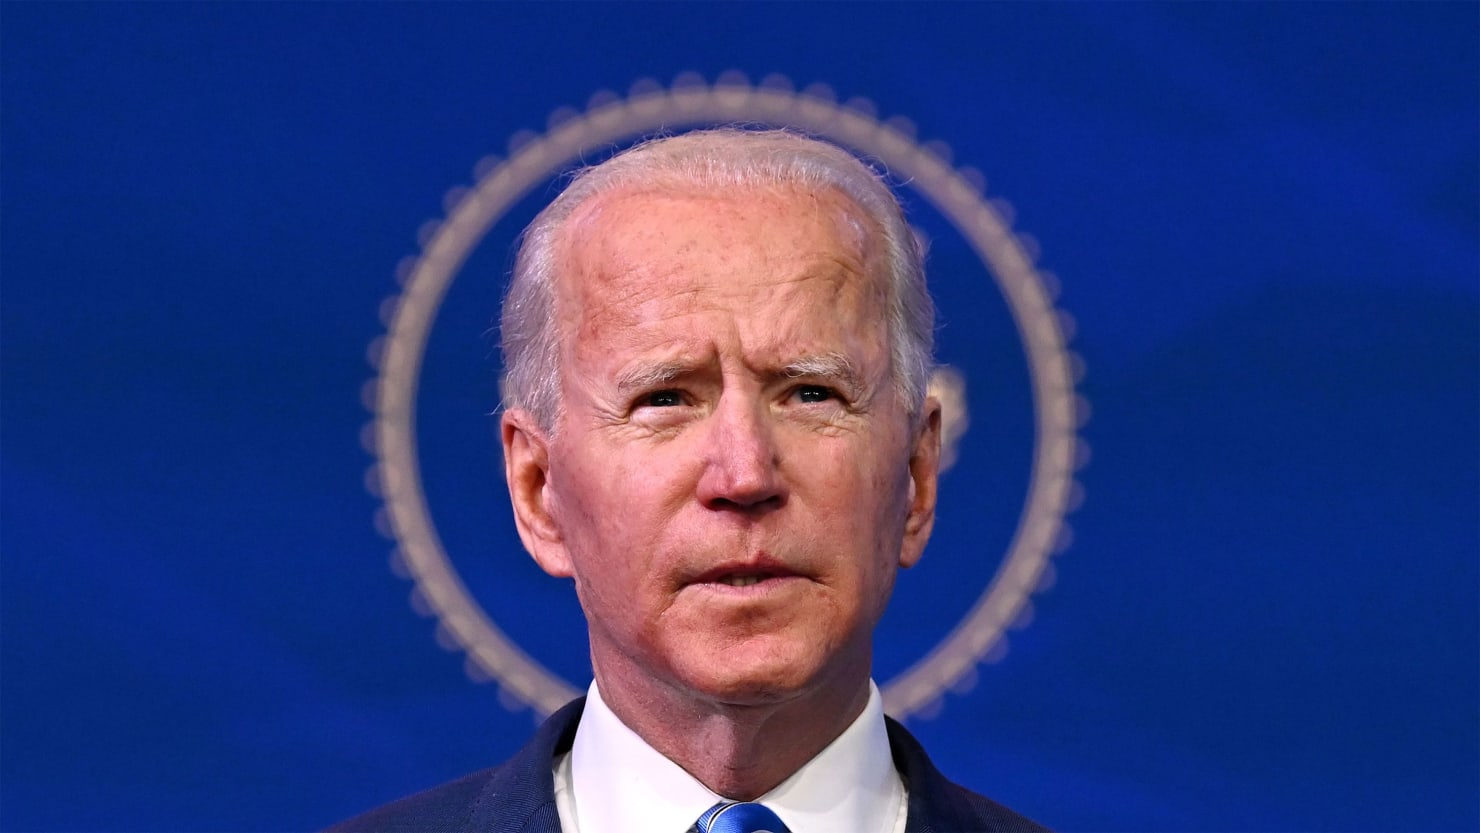 Pressure Builds on Biden Admin to Prosecute Trump for 'Treason'